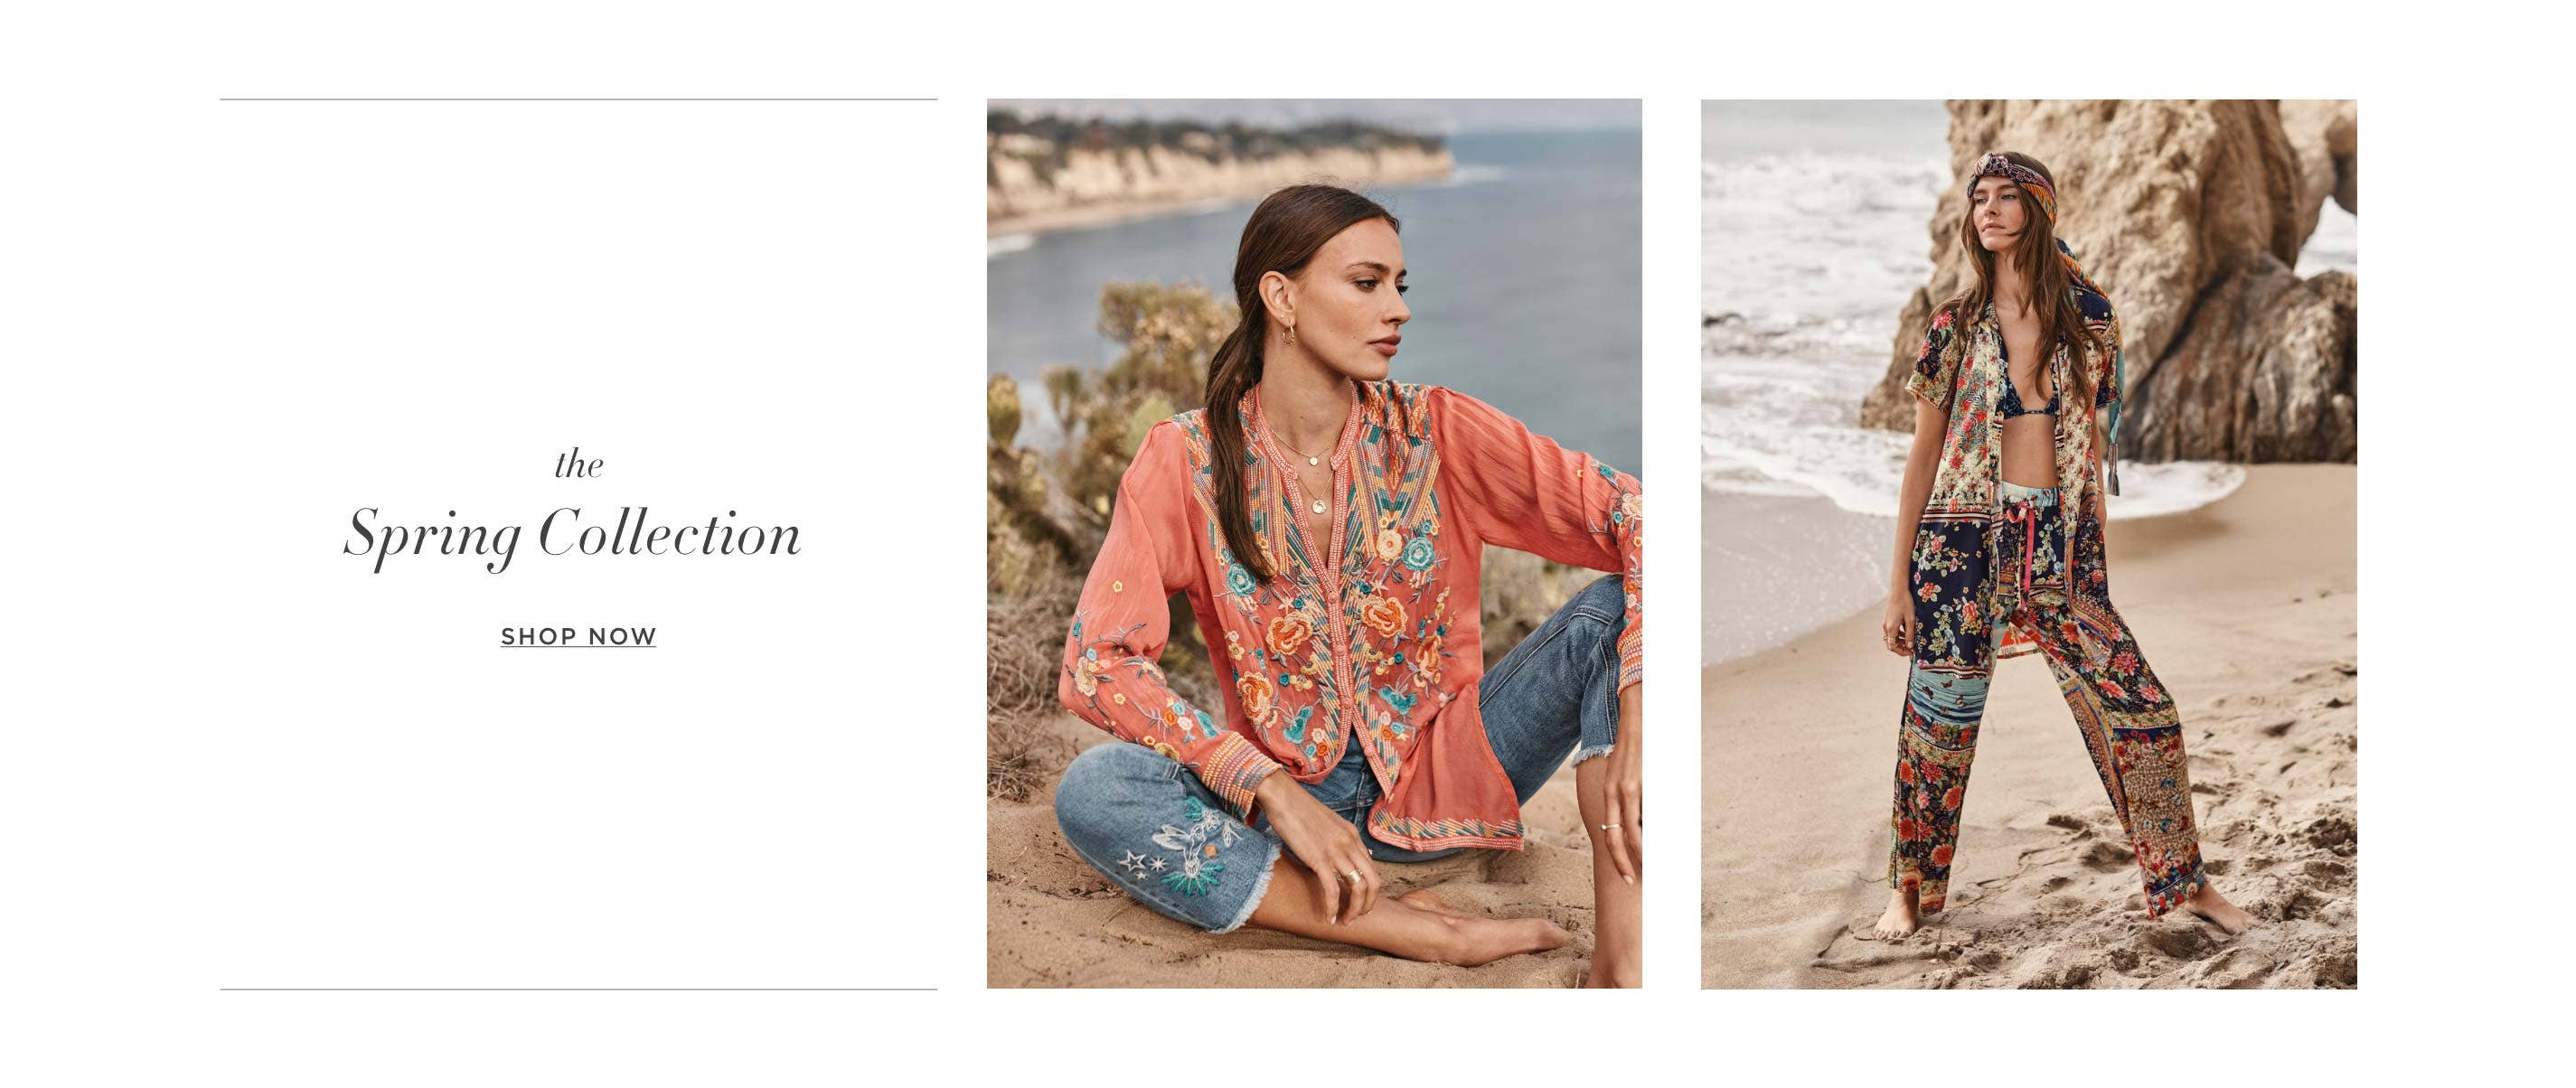 The Spring Collection - Shop Now